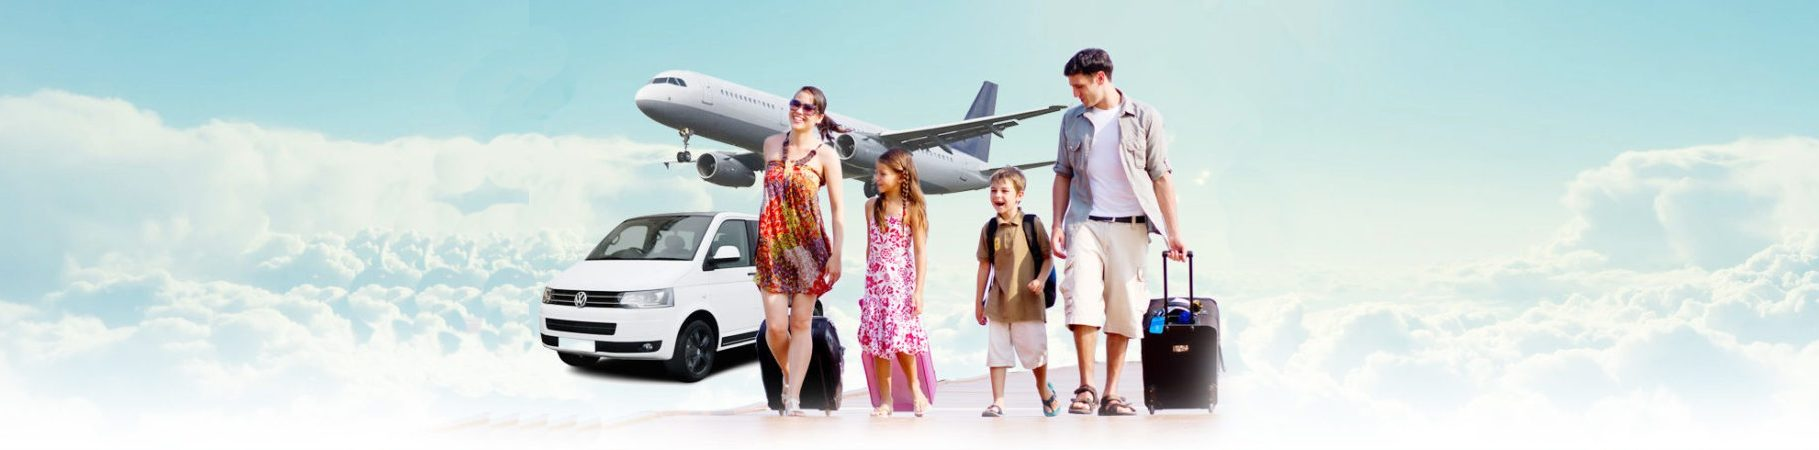 Majorca Airport Transfer to Alcudia, Cala Ratjada, Palma and Magaluff